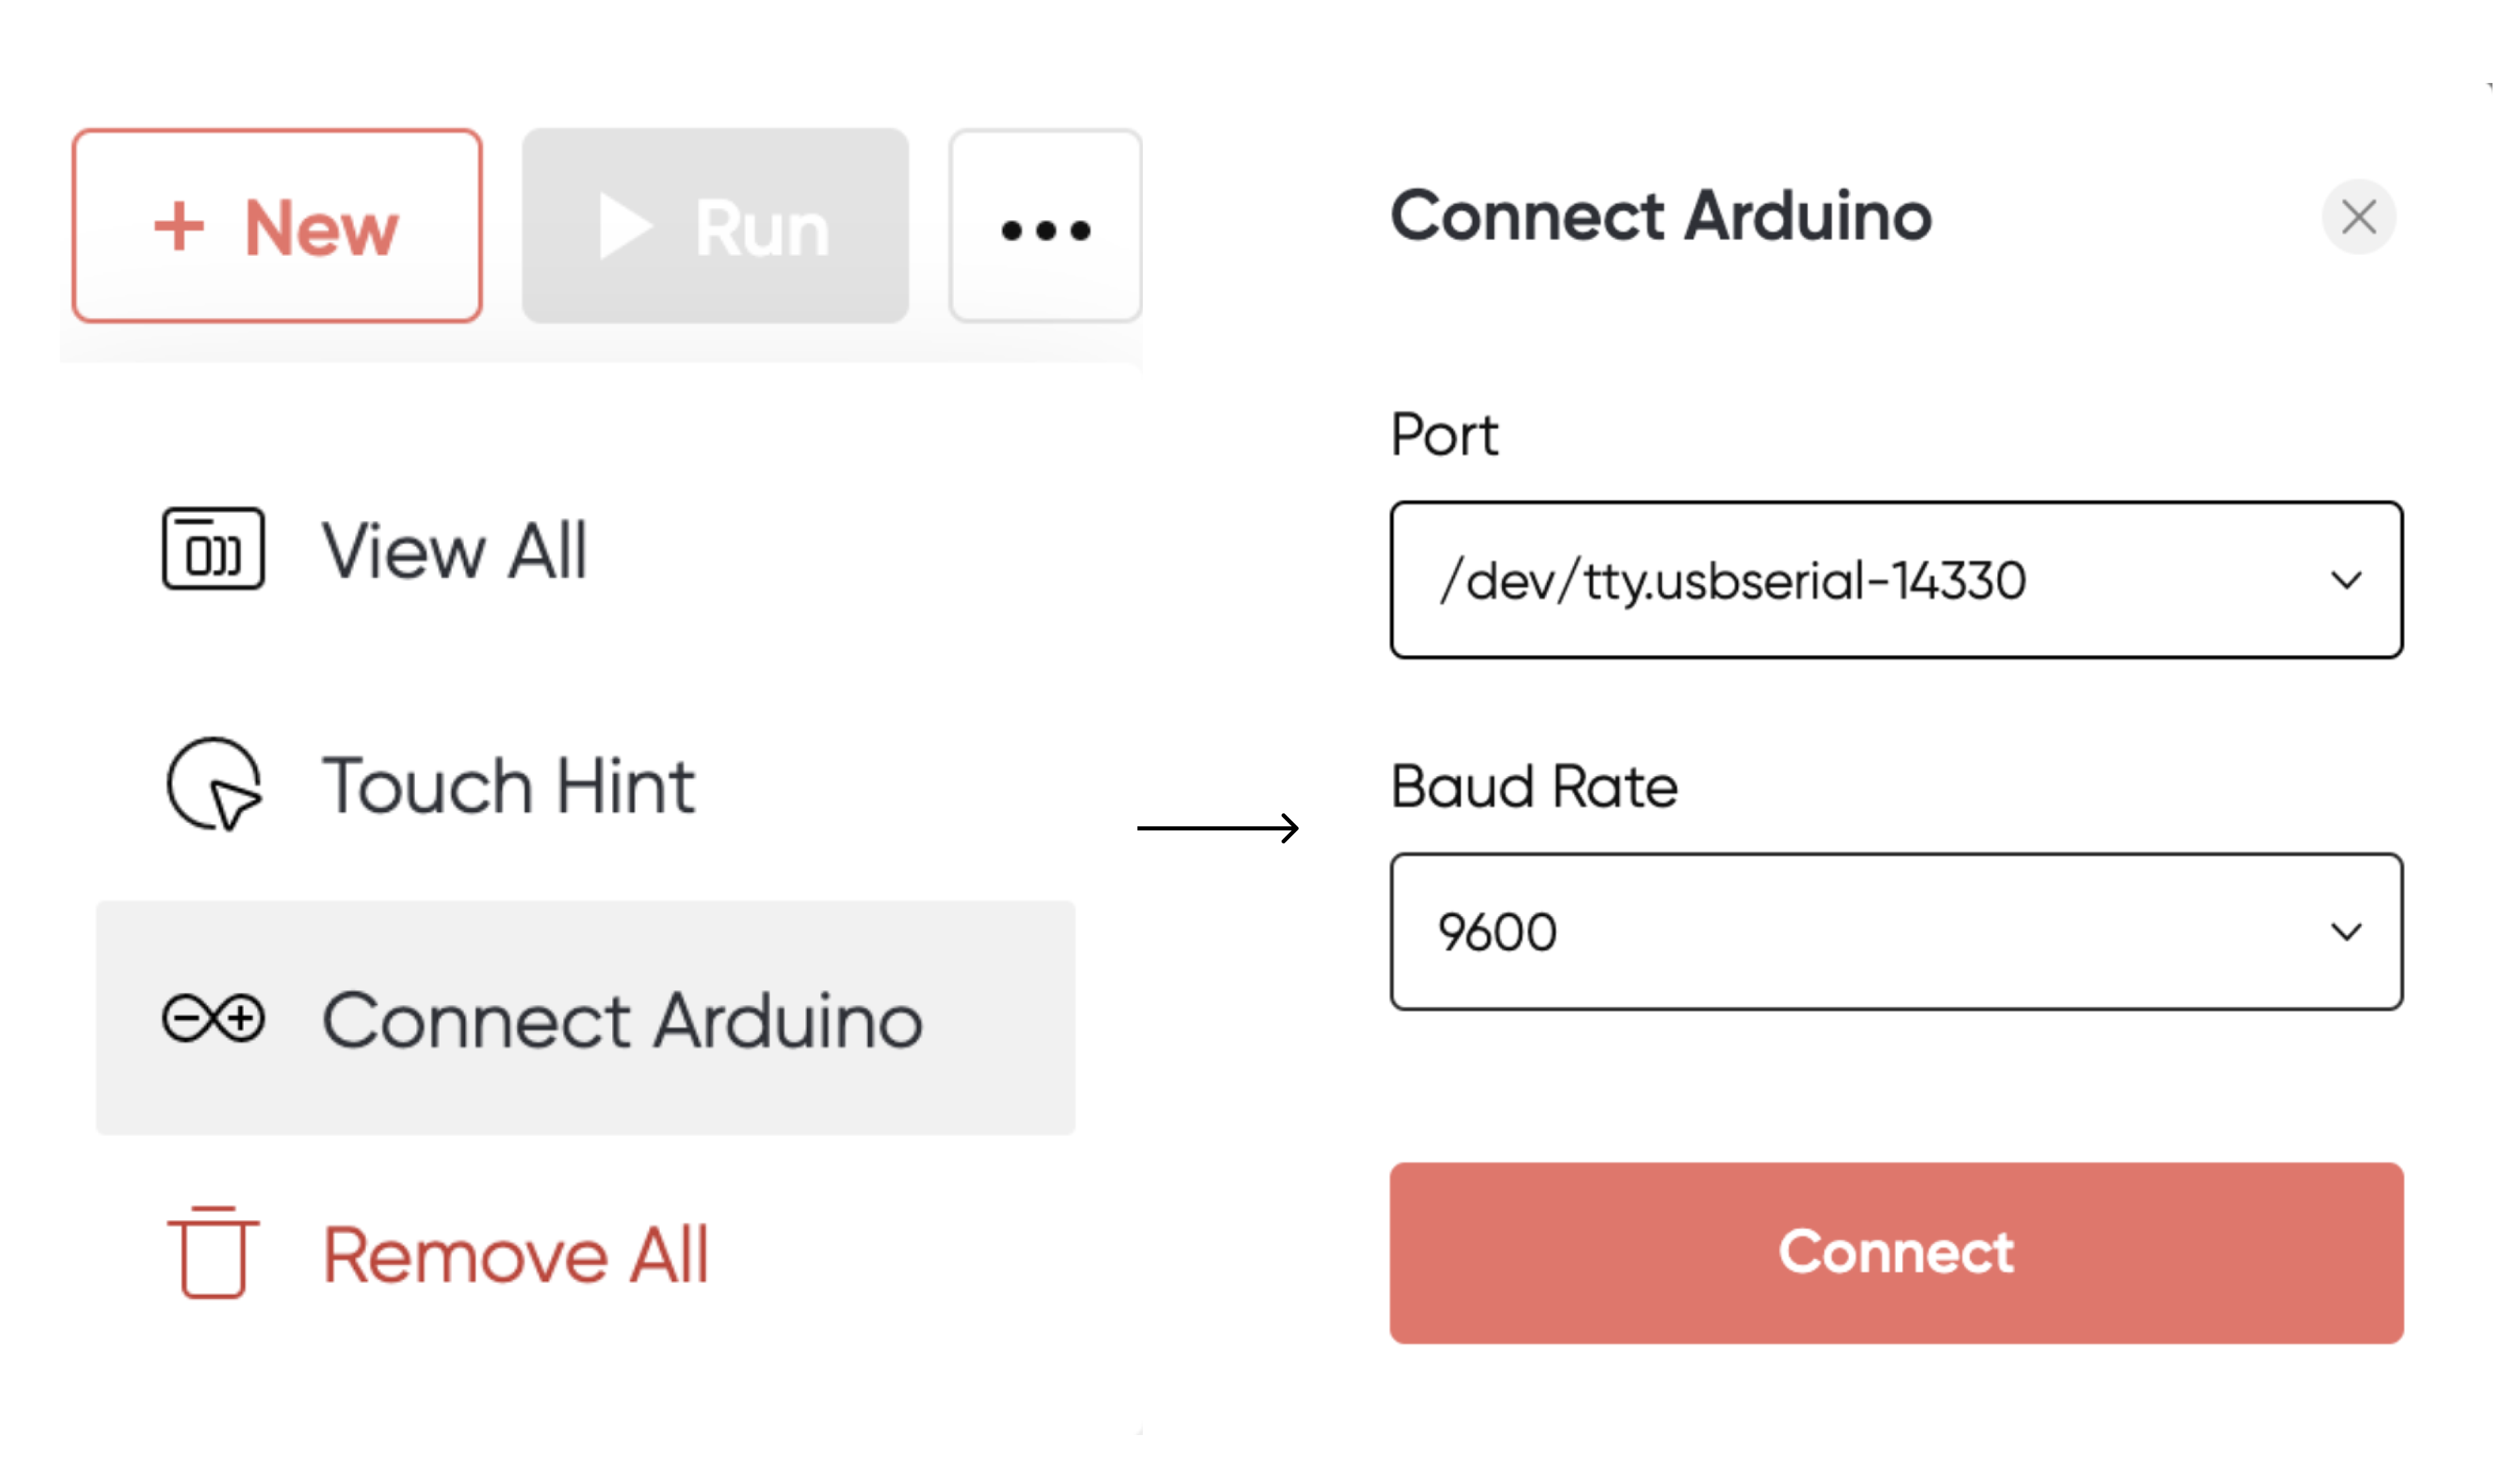 how to connect Arduino with ProtoPie connect